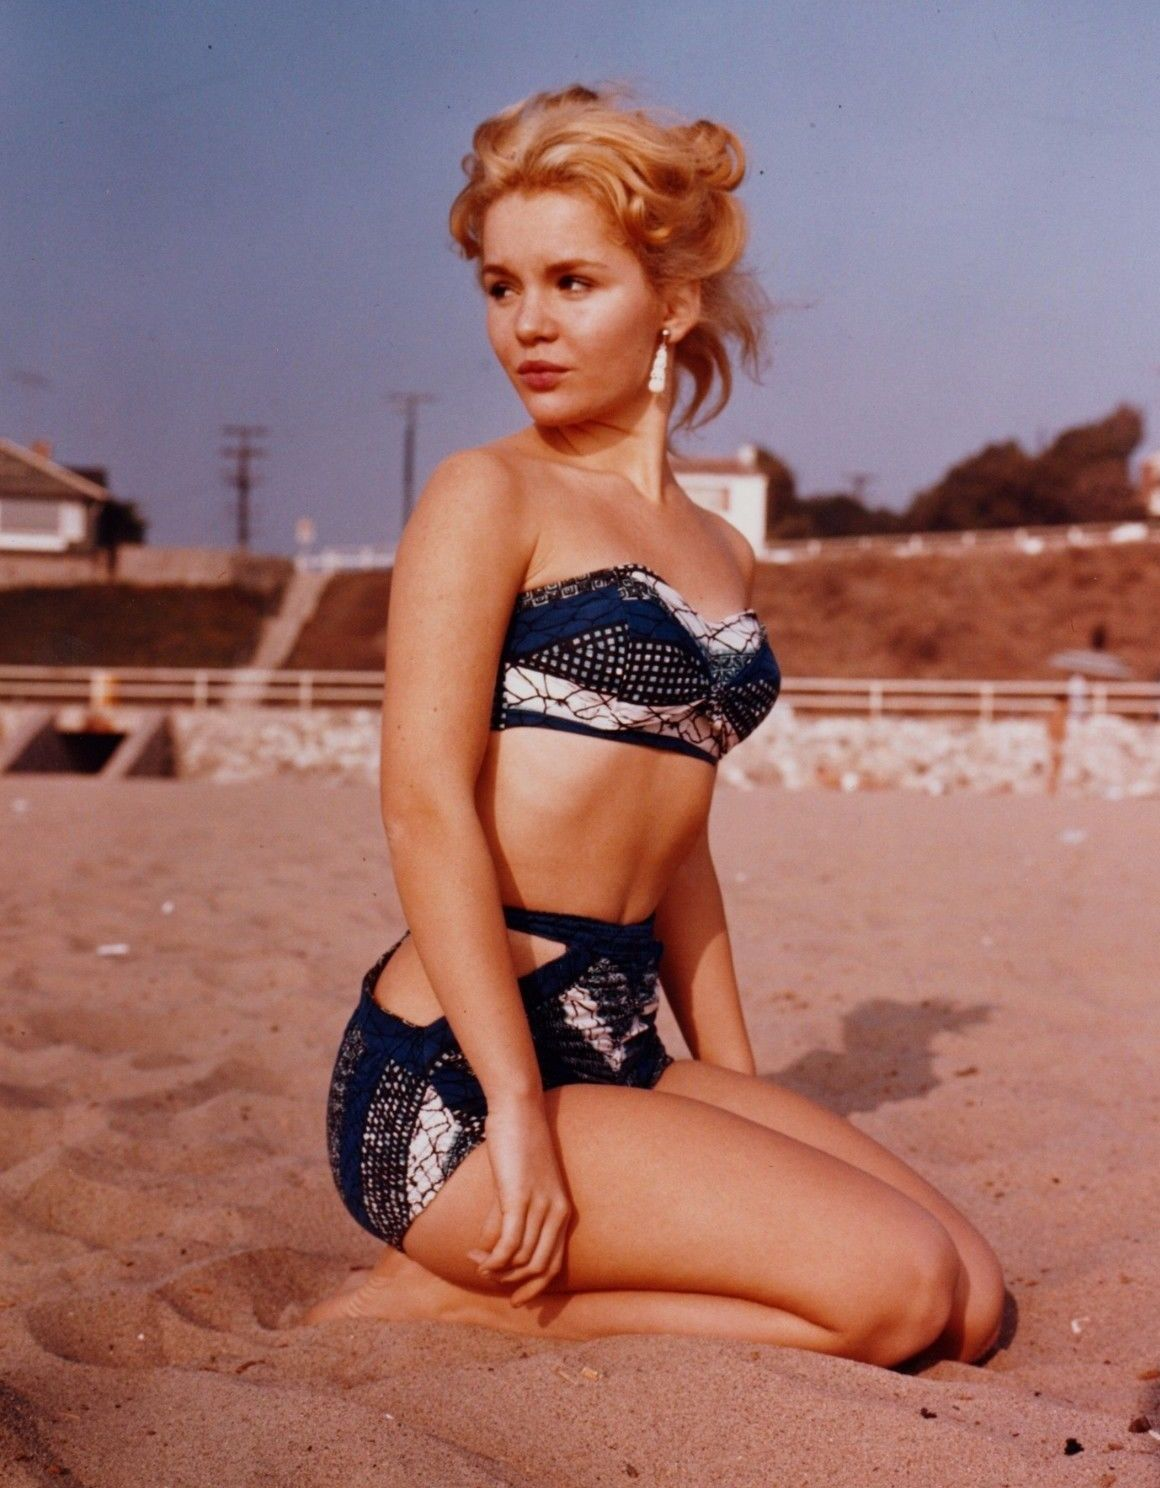 Tuesday Weld william weld